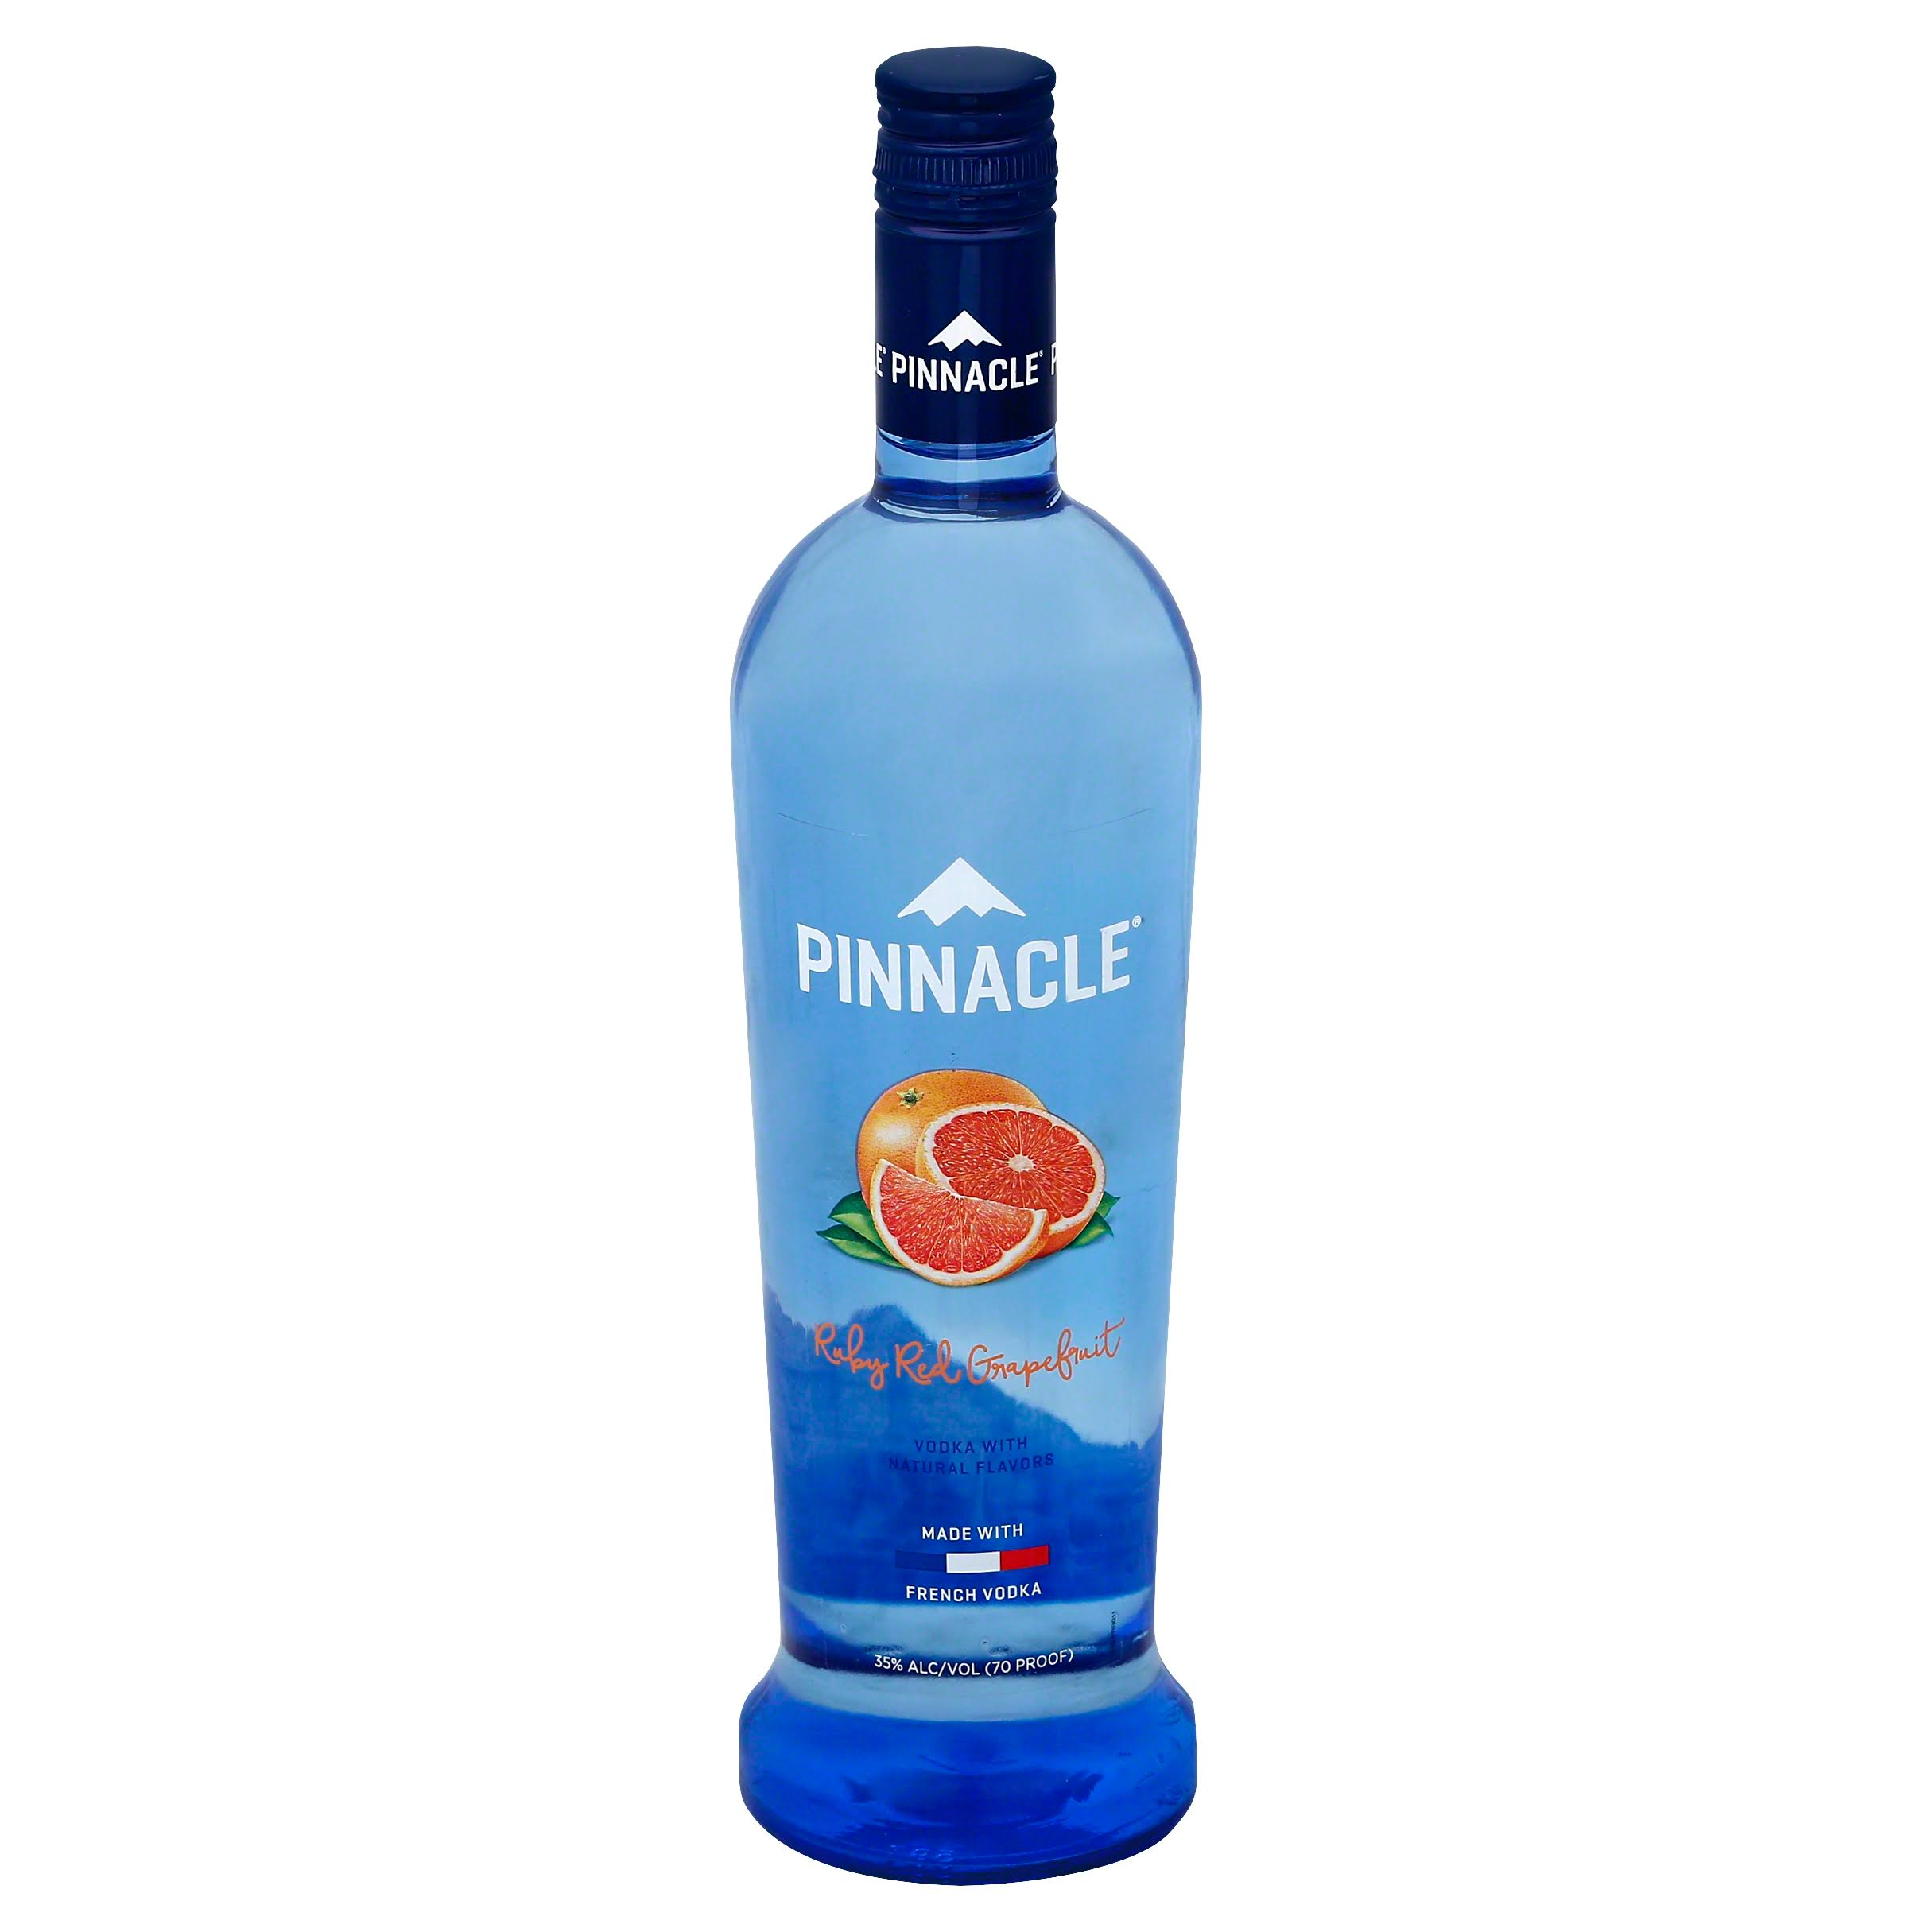 Pinnacle Ruby Red Grapefruit Vodka - 750ml